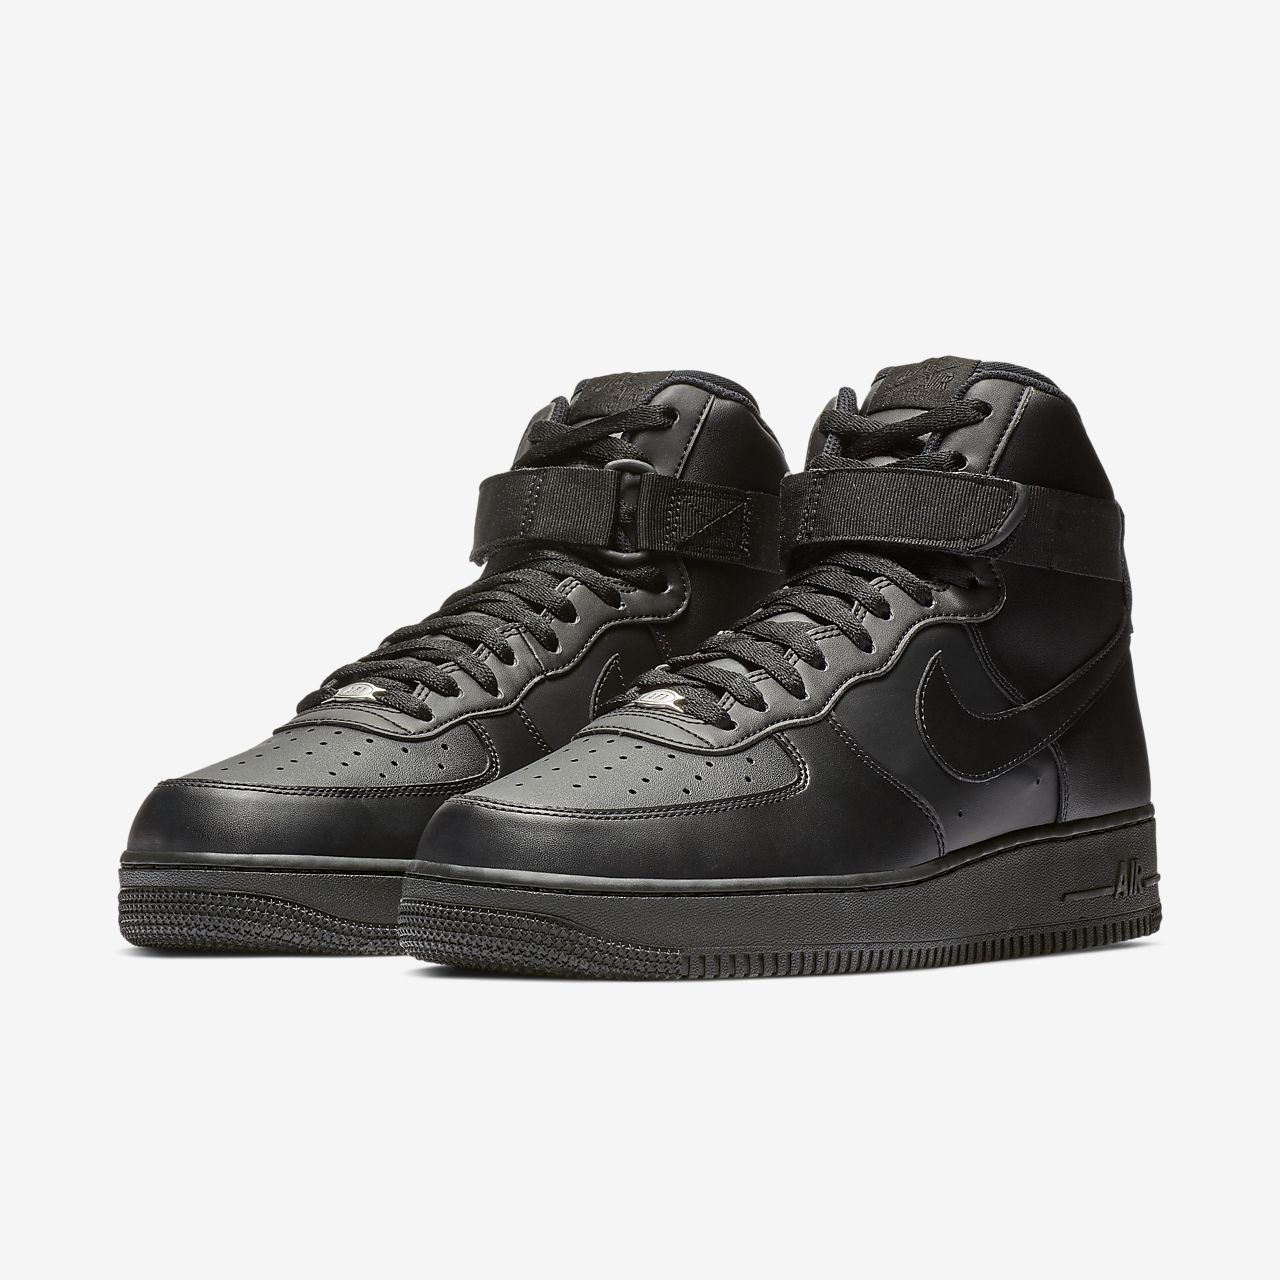 top quality online professional Nike Air Force 1 High-Top Sneakers cheap sale store clearance sast free shipping buy kAEFvjMlgk